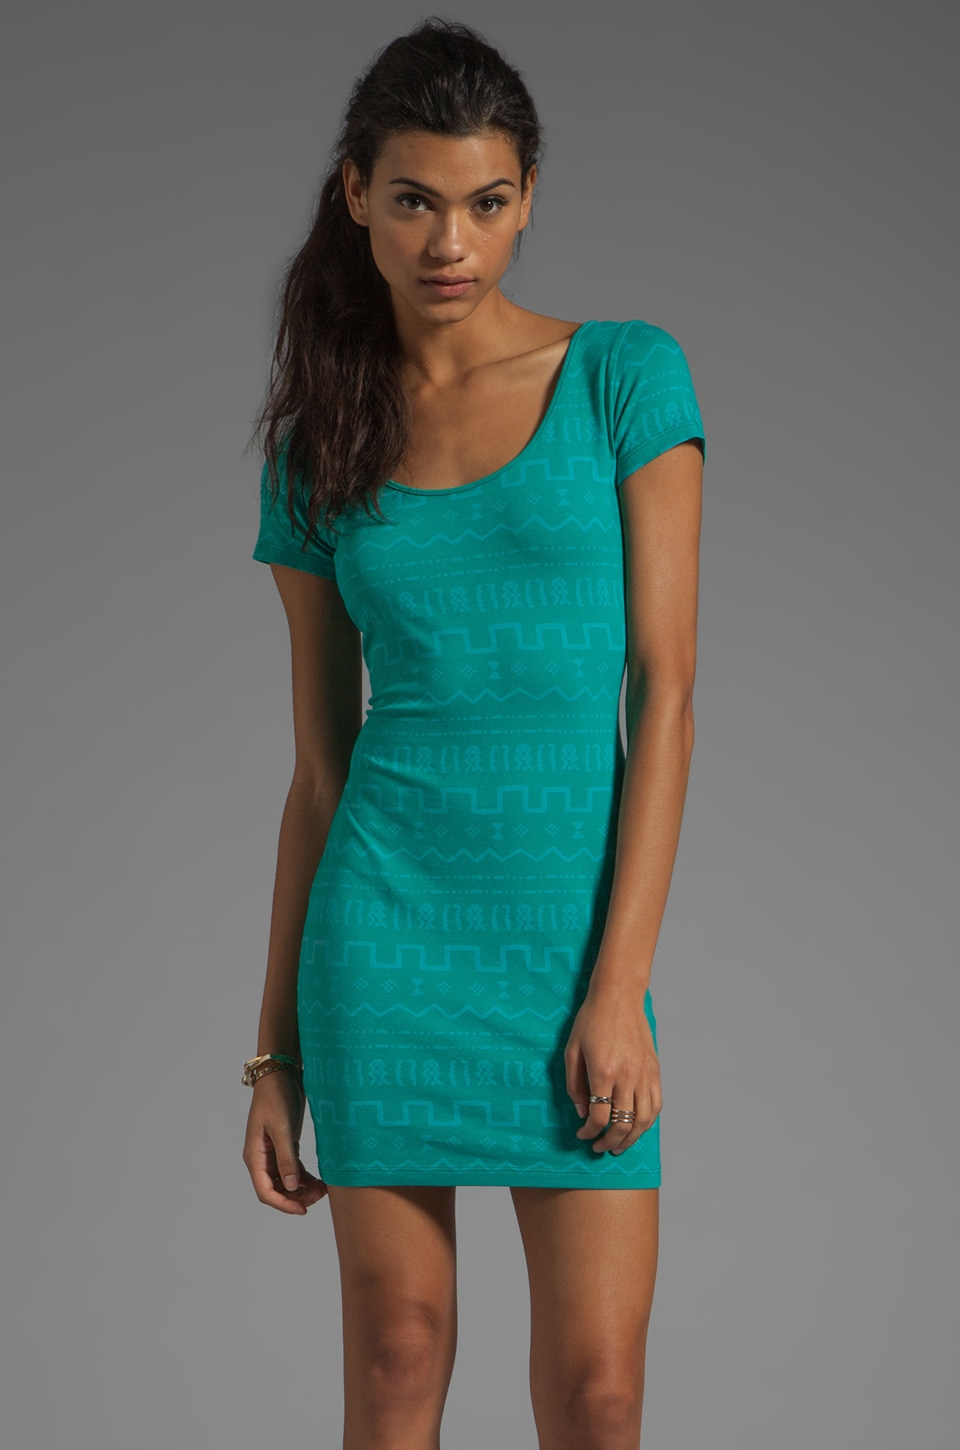 MONROW Tiki Print Double Scoop Dress in Bright Teal